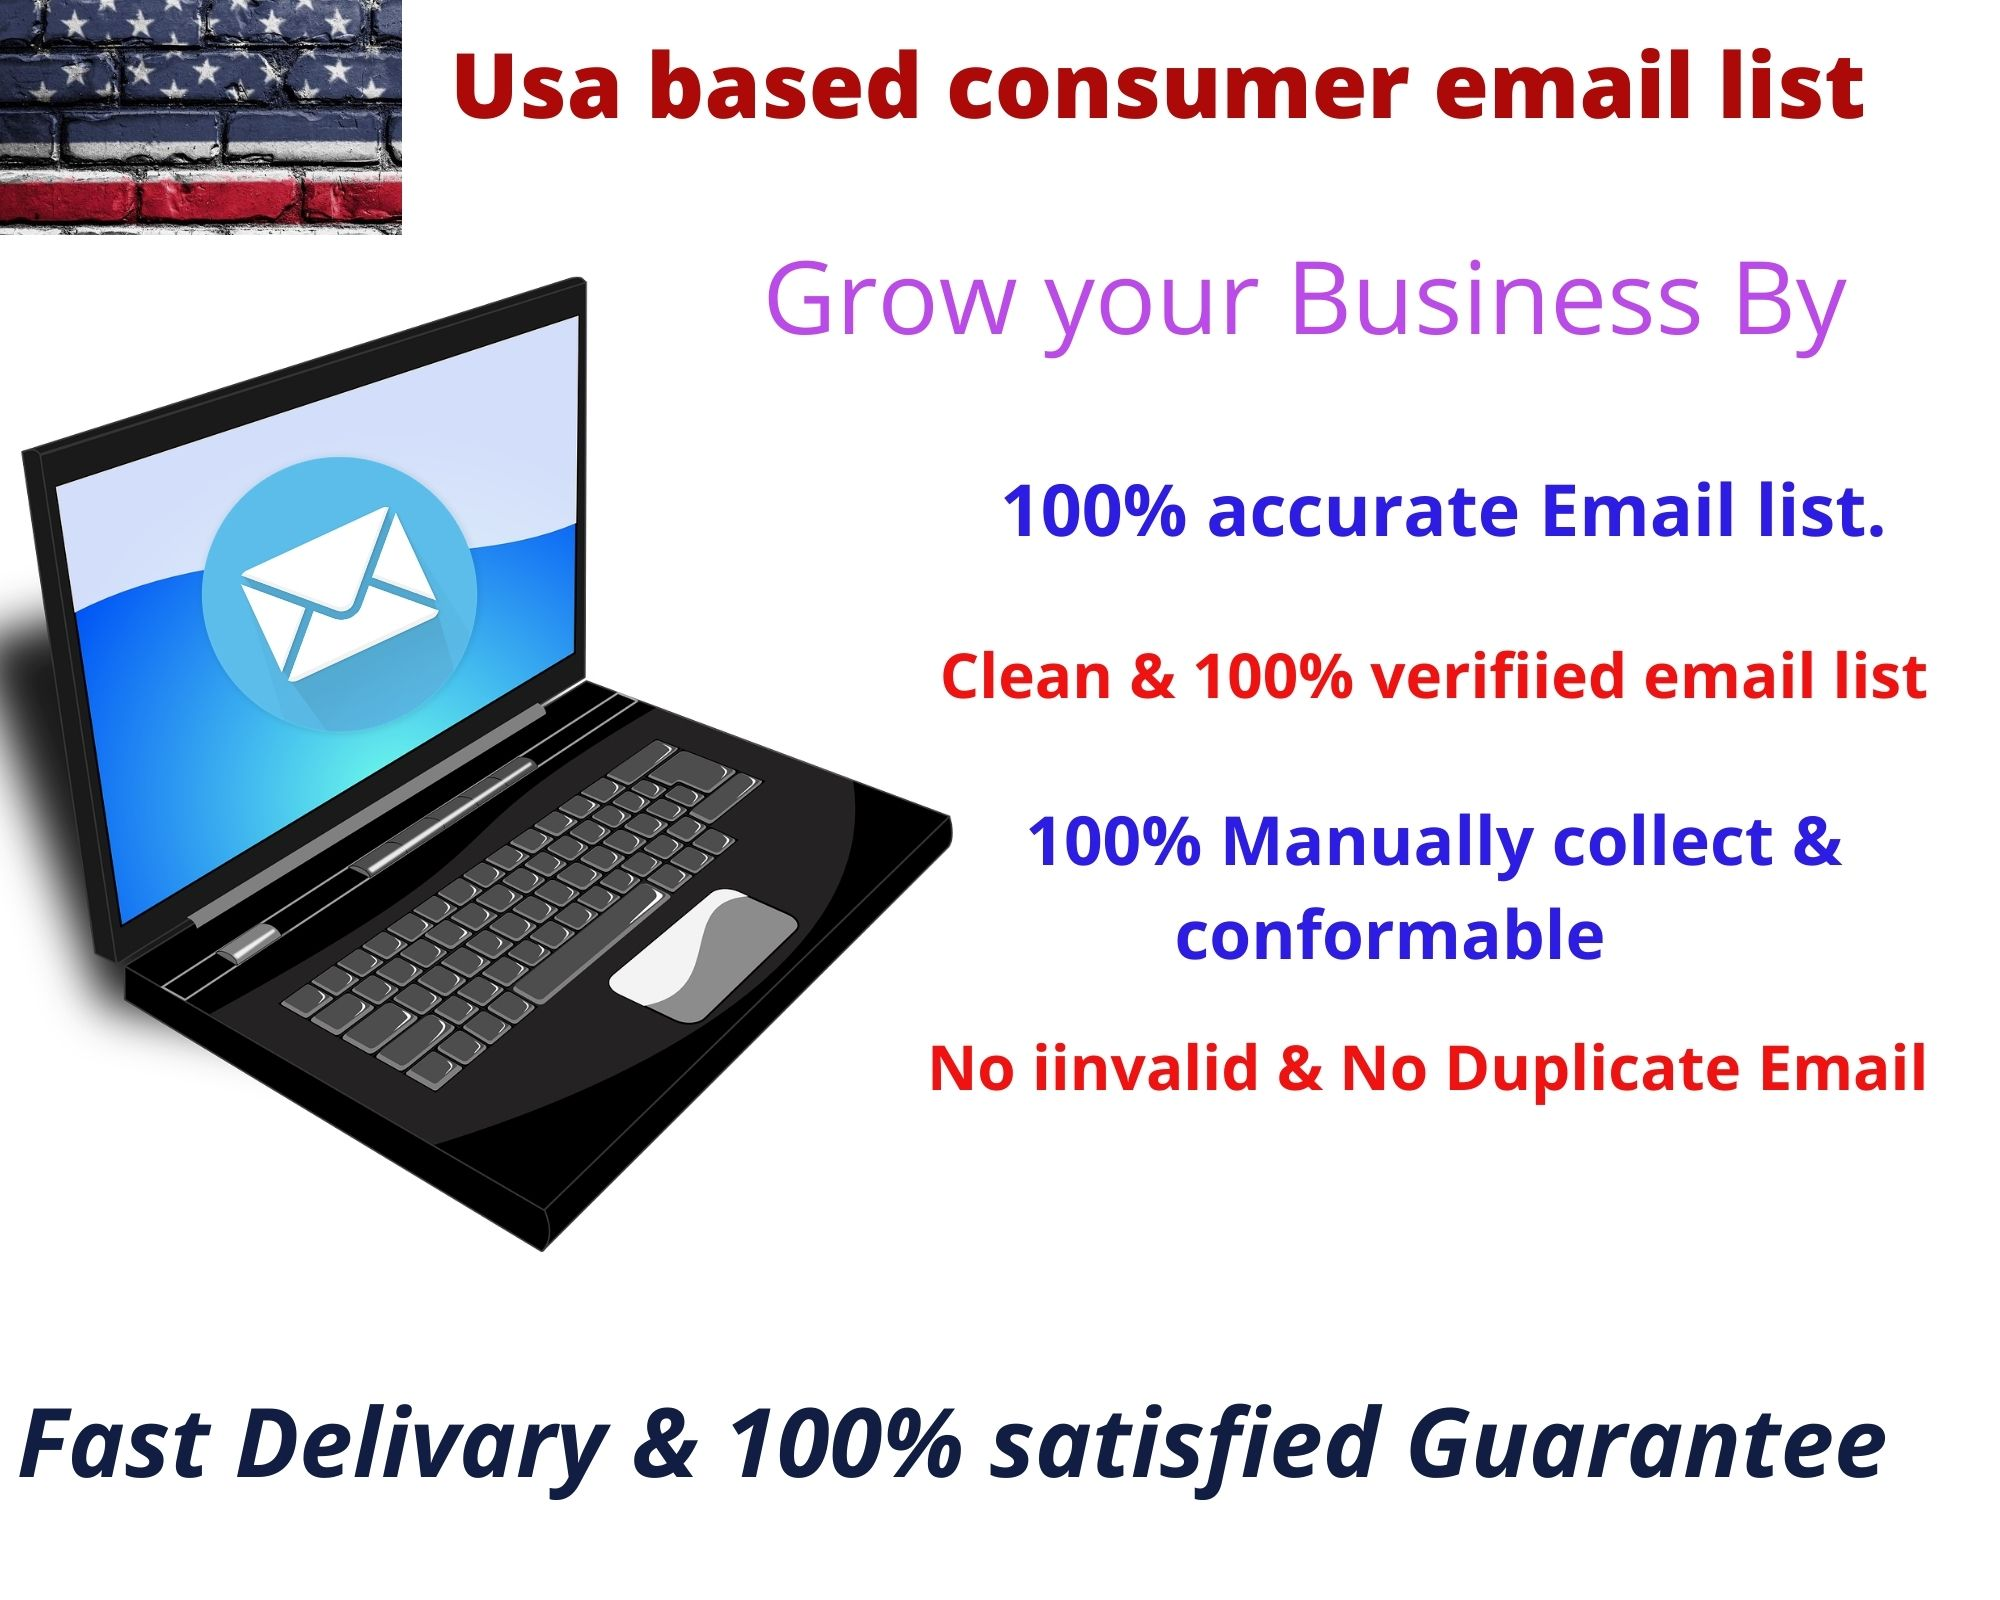 I will provide 5000 USA consumer email list in 24 hours